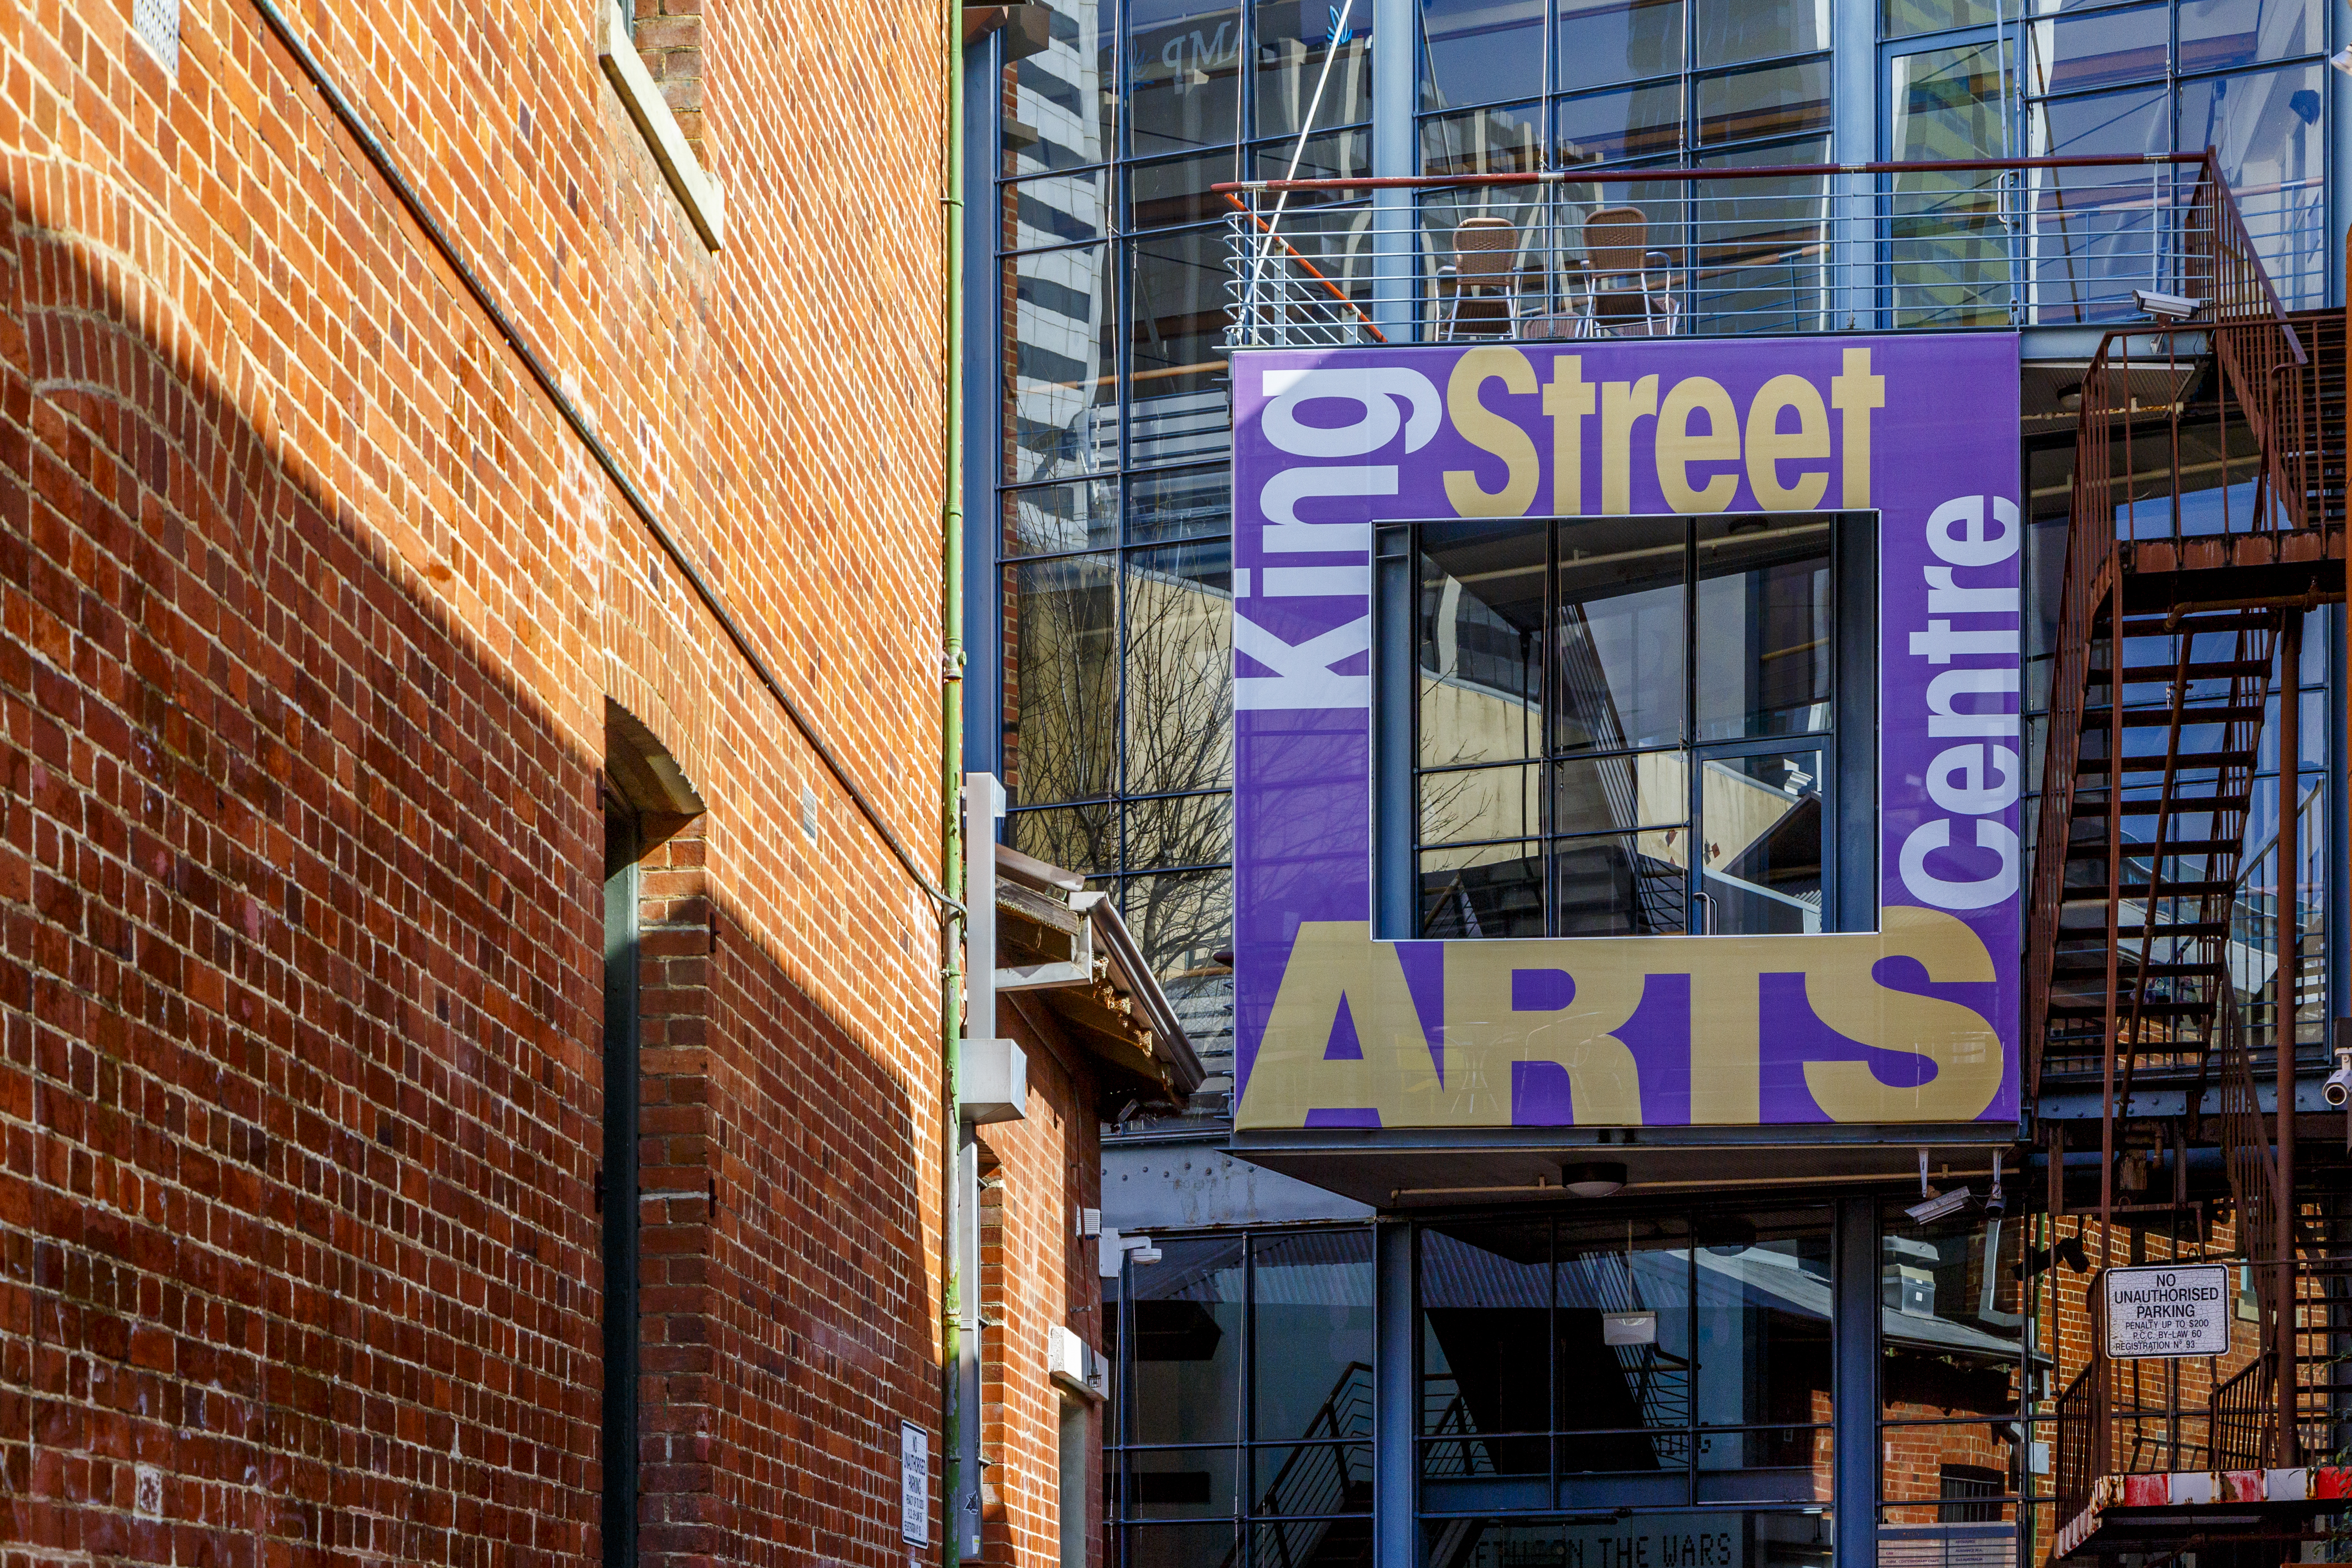 King Street Arts Centre